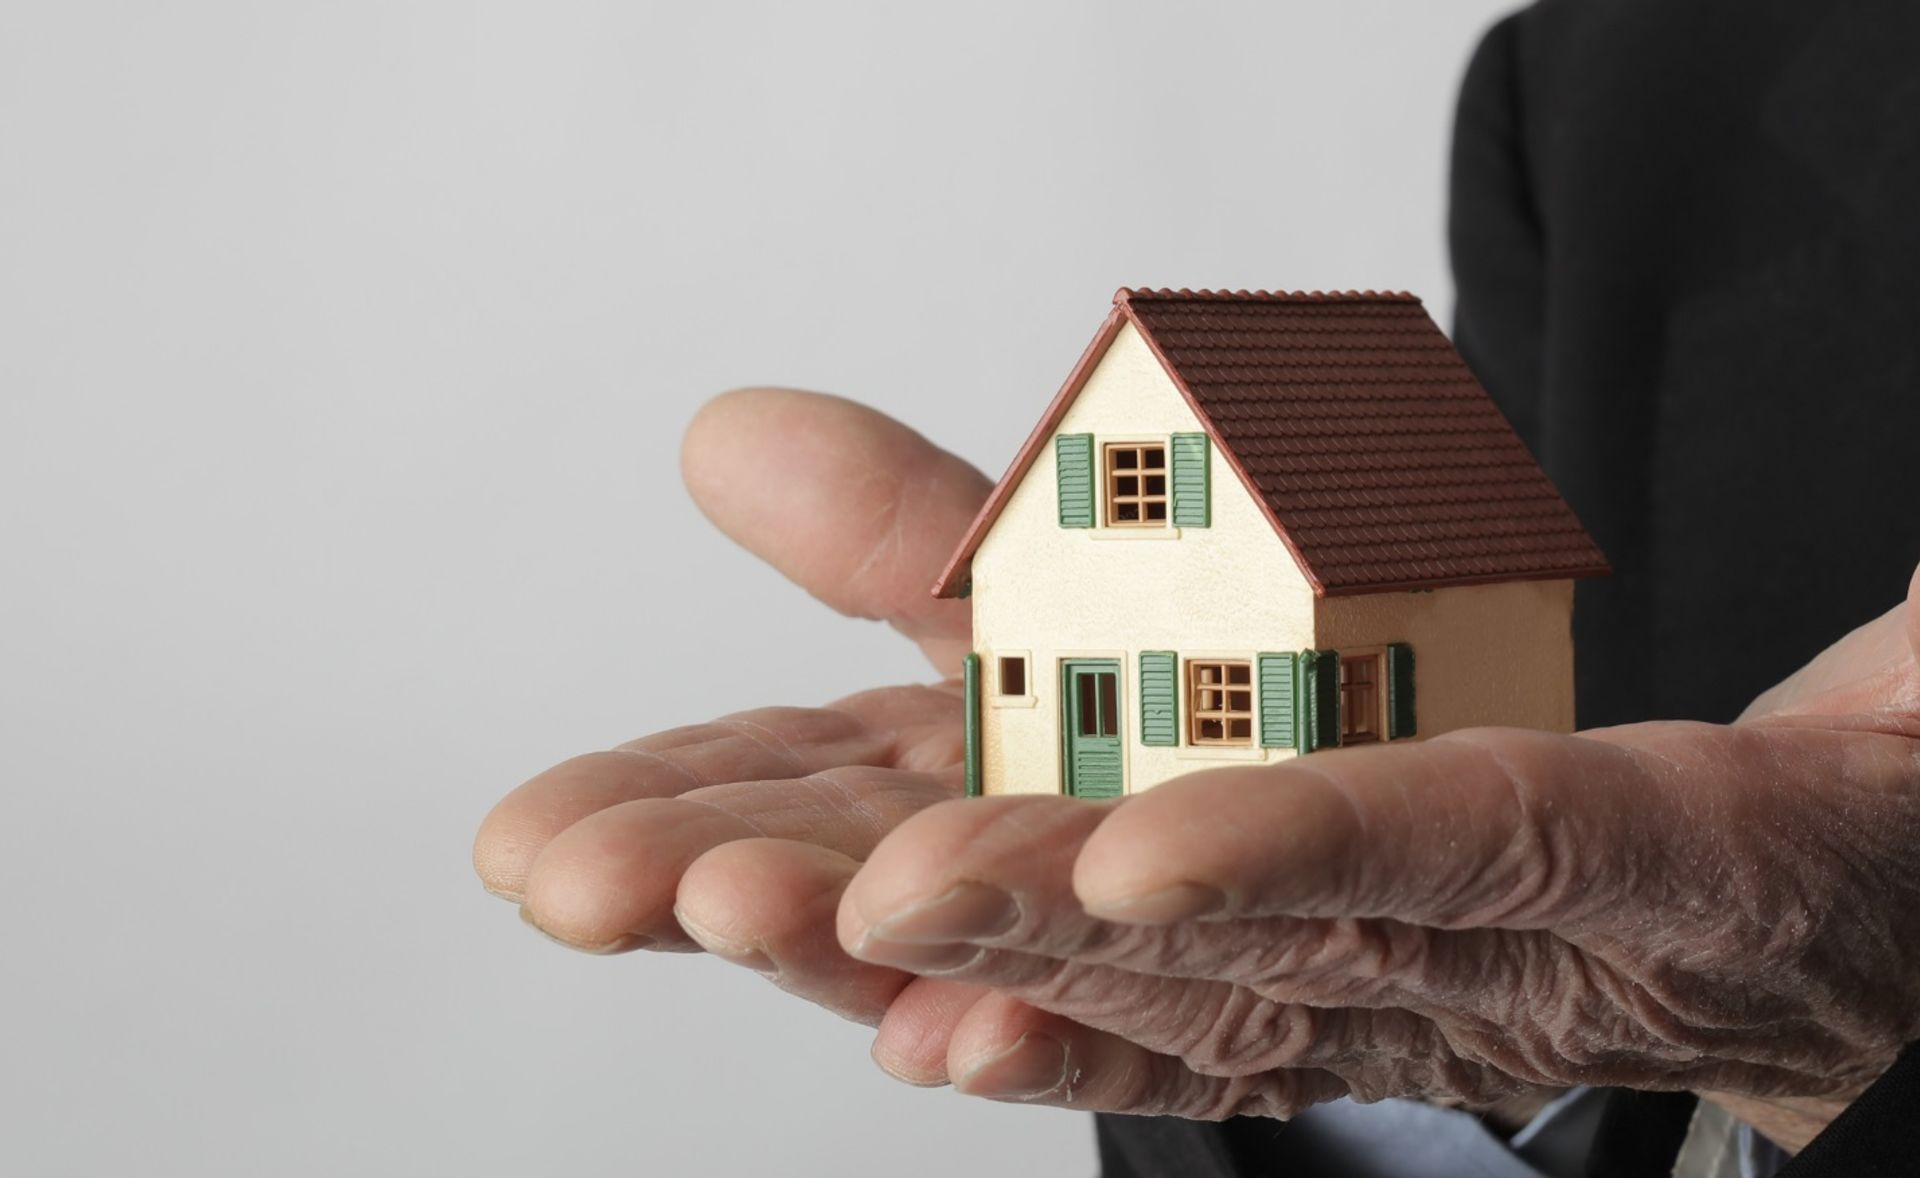 YES, Now is a Great Time to Purchase Investment Property!